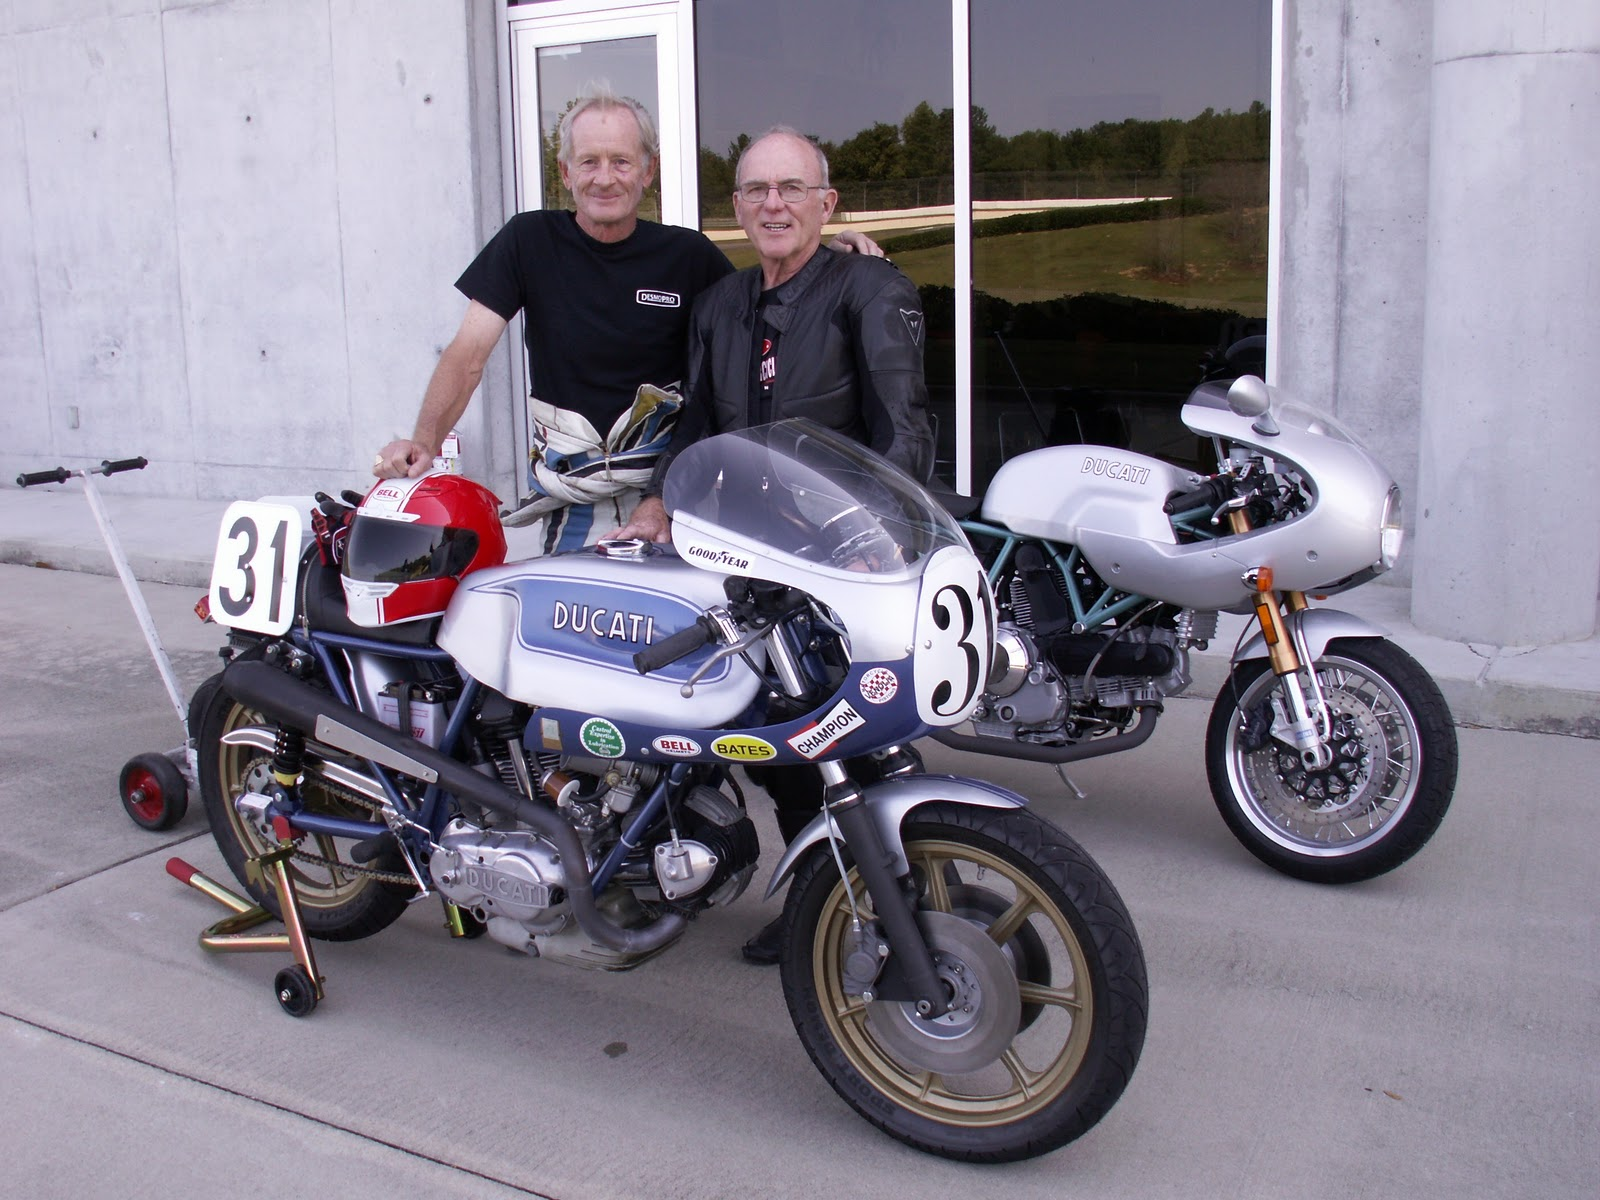 Legends Of Ducati V Twin Racing History Cook Neilson And Paul Smart Enjoy A Brief Reunion Before Getting Ready To Get In Some Laps At Barber Motorsports